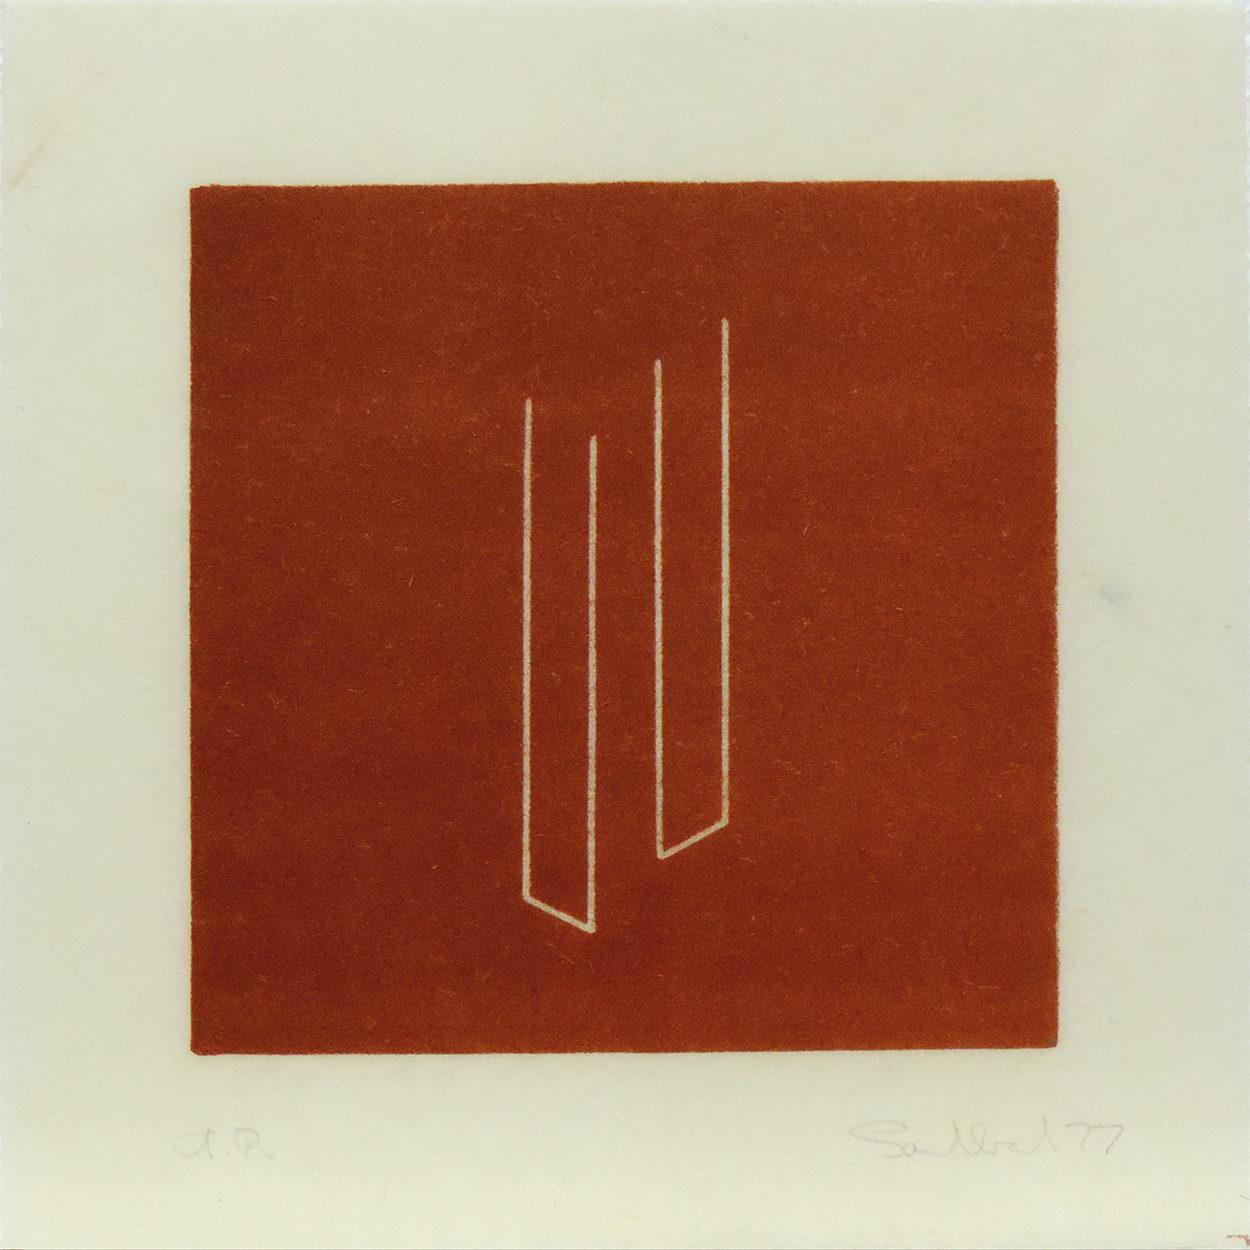 Untitled [from an untitled portfolio]|lithograph on handmade paper with cut edge|19 x 18.9 cm|1977